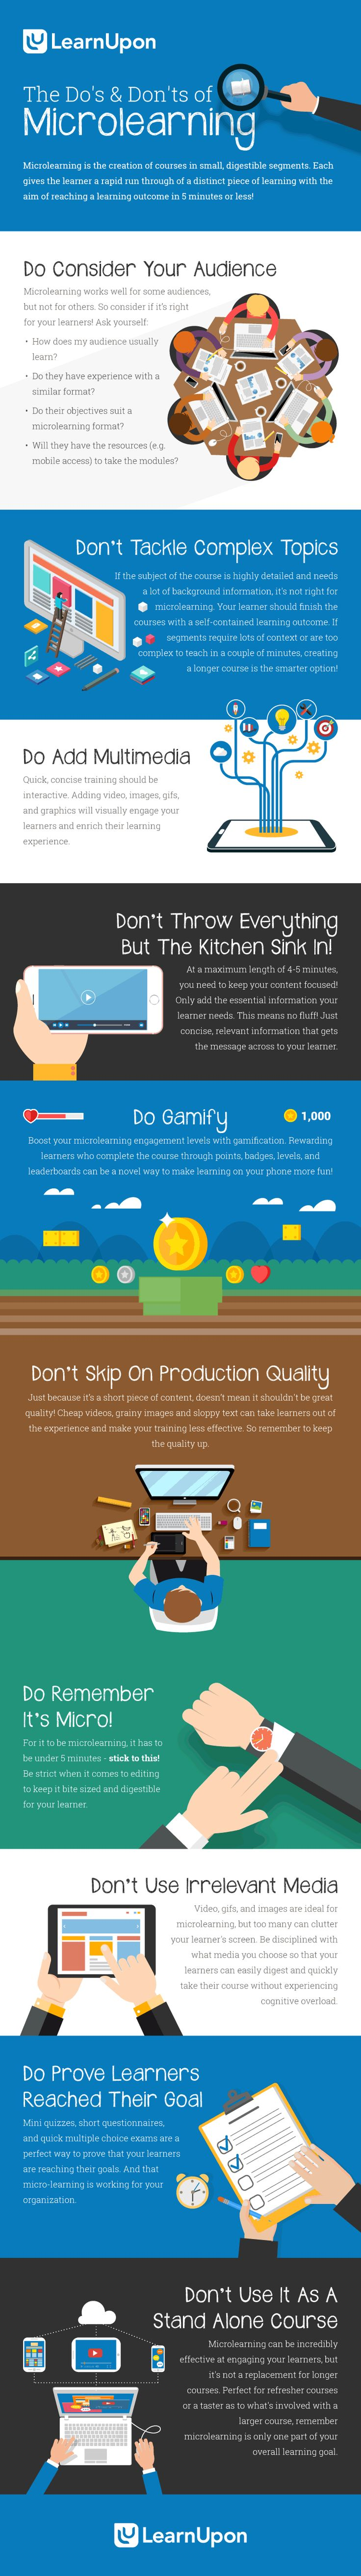 The Dou0027s and Donu0027ts of Microlearning Infographic